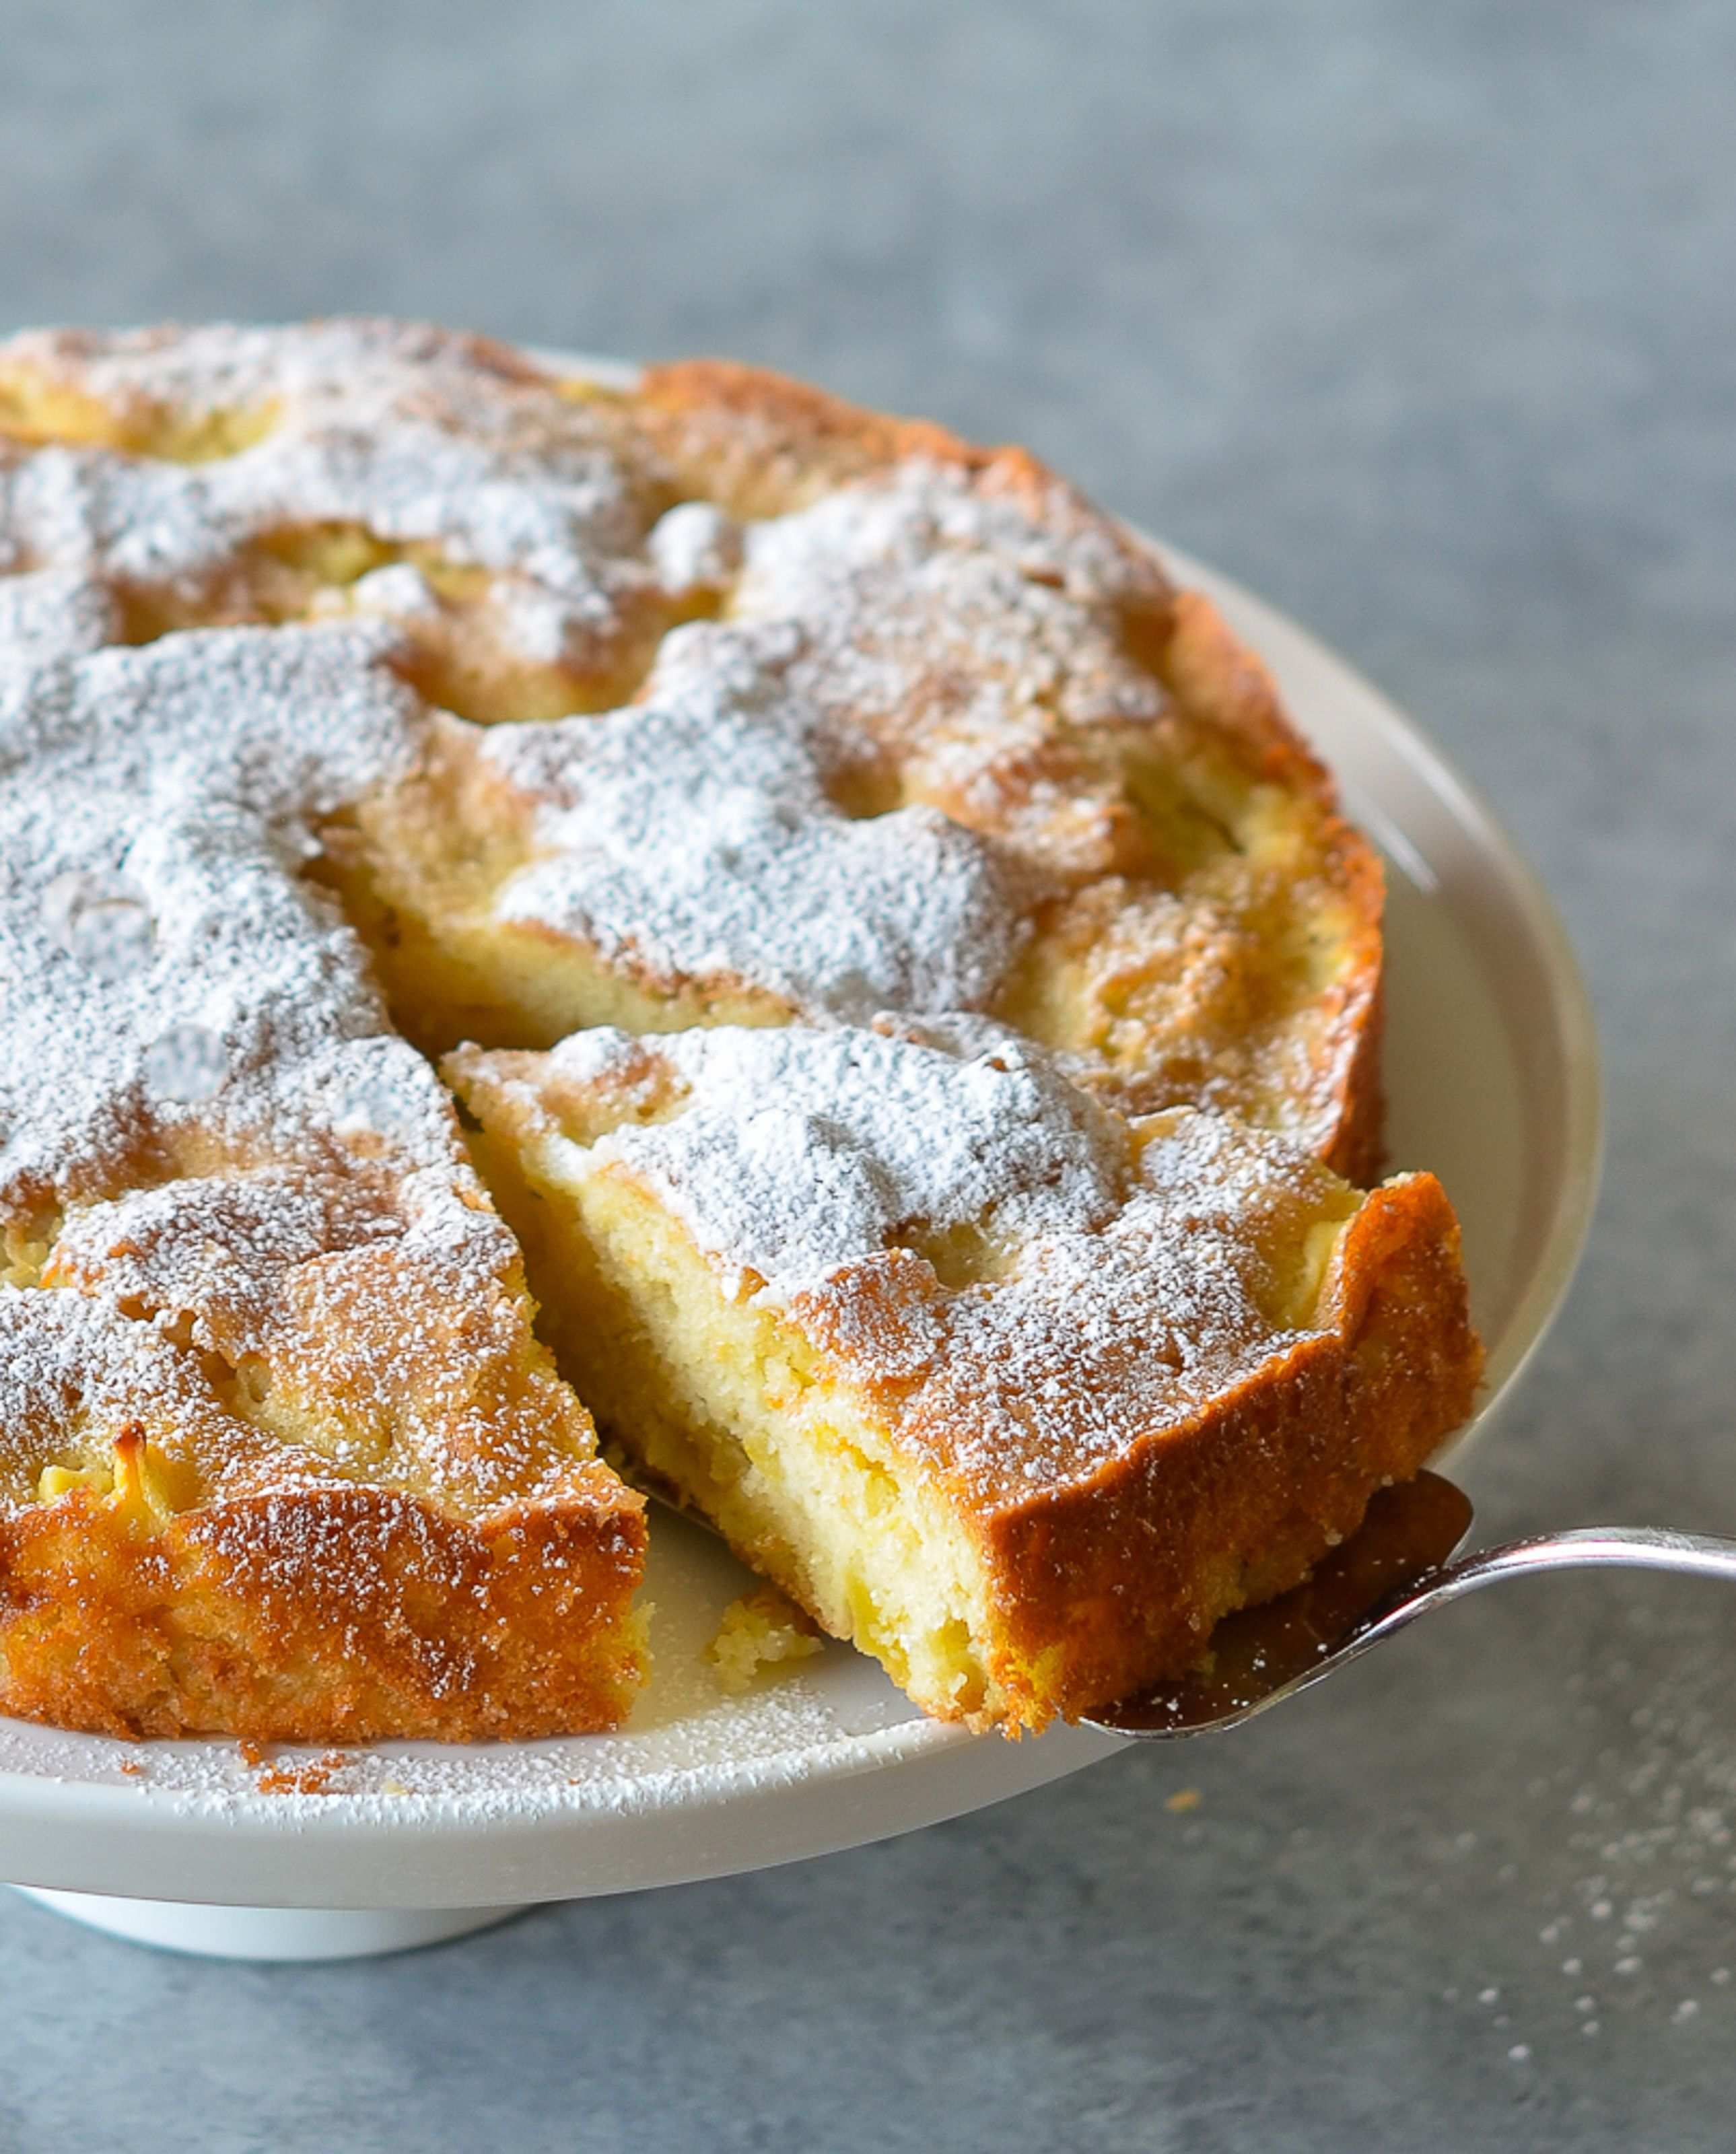 french food #food #foods Beautiful and delicious, this French Apple Cake is made with chunks of sweet apples nestled in a tender, buttery rum cake.